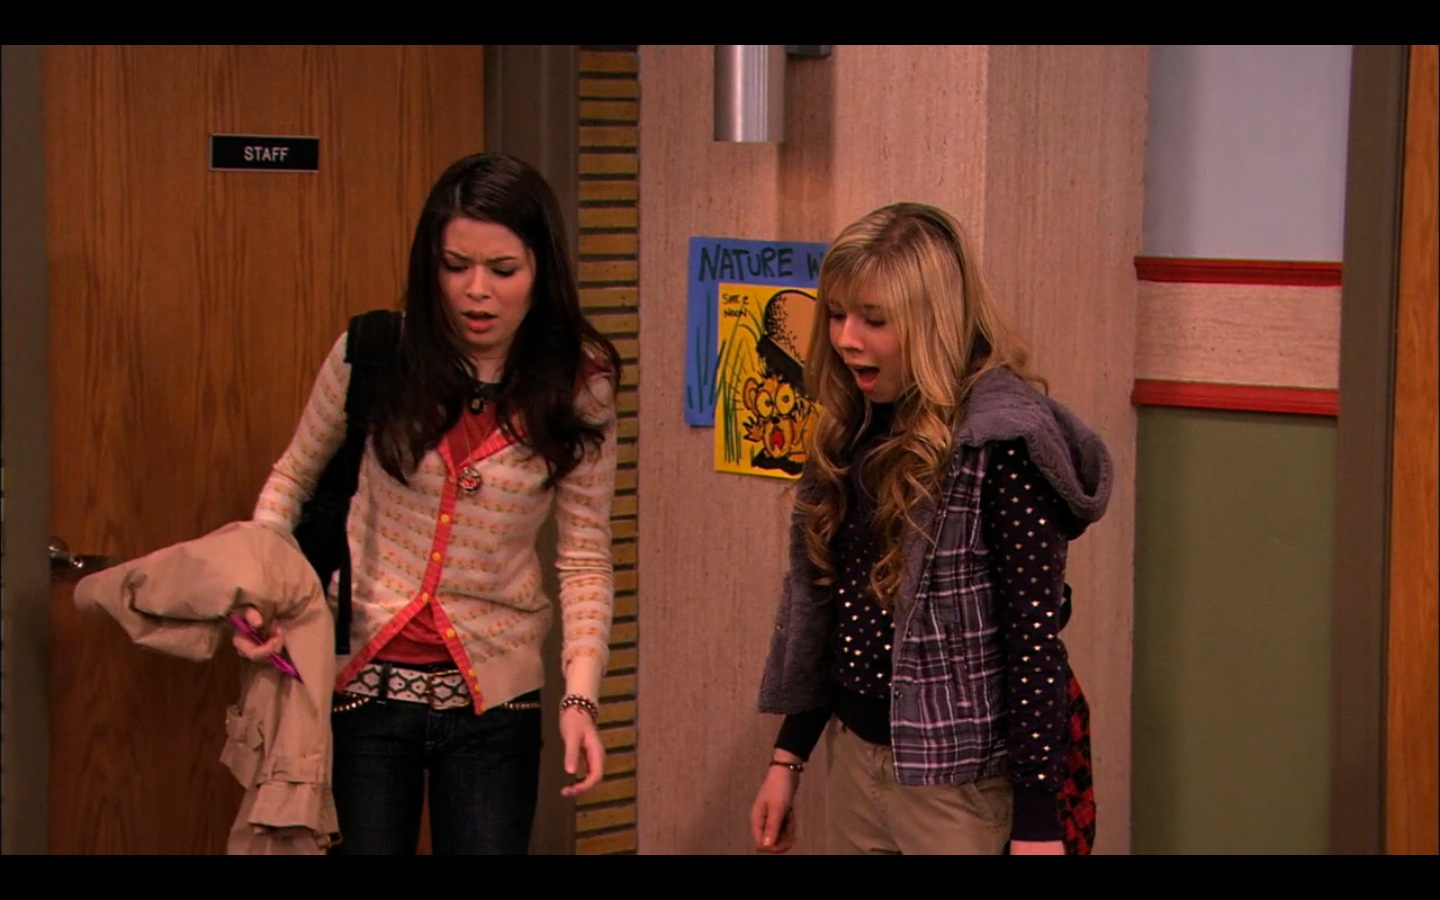 icarly ispeed date gagged Sam ties up carly preston corey preston sam and carly got kidnapped, they are being held bound and gagged carly sam and freddie tied up - icarly answers.